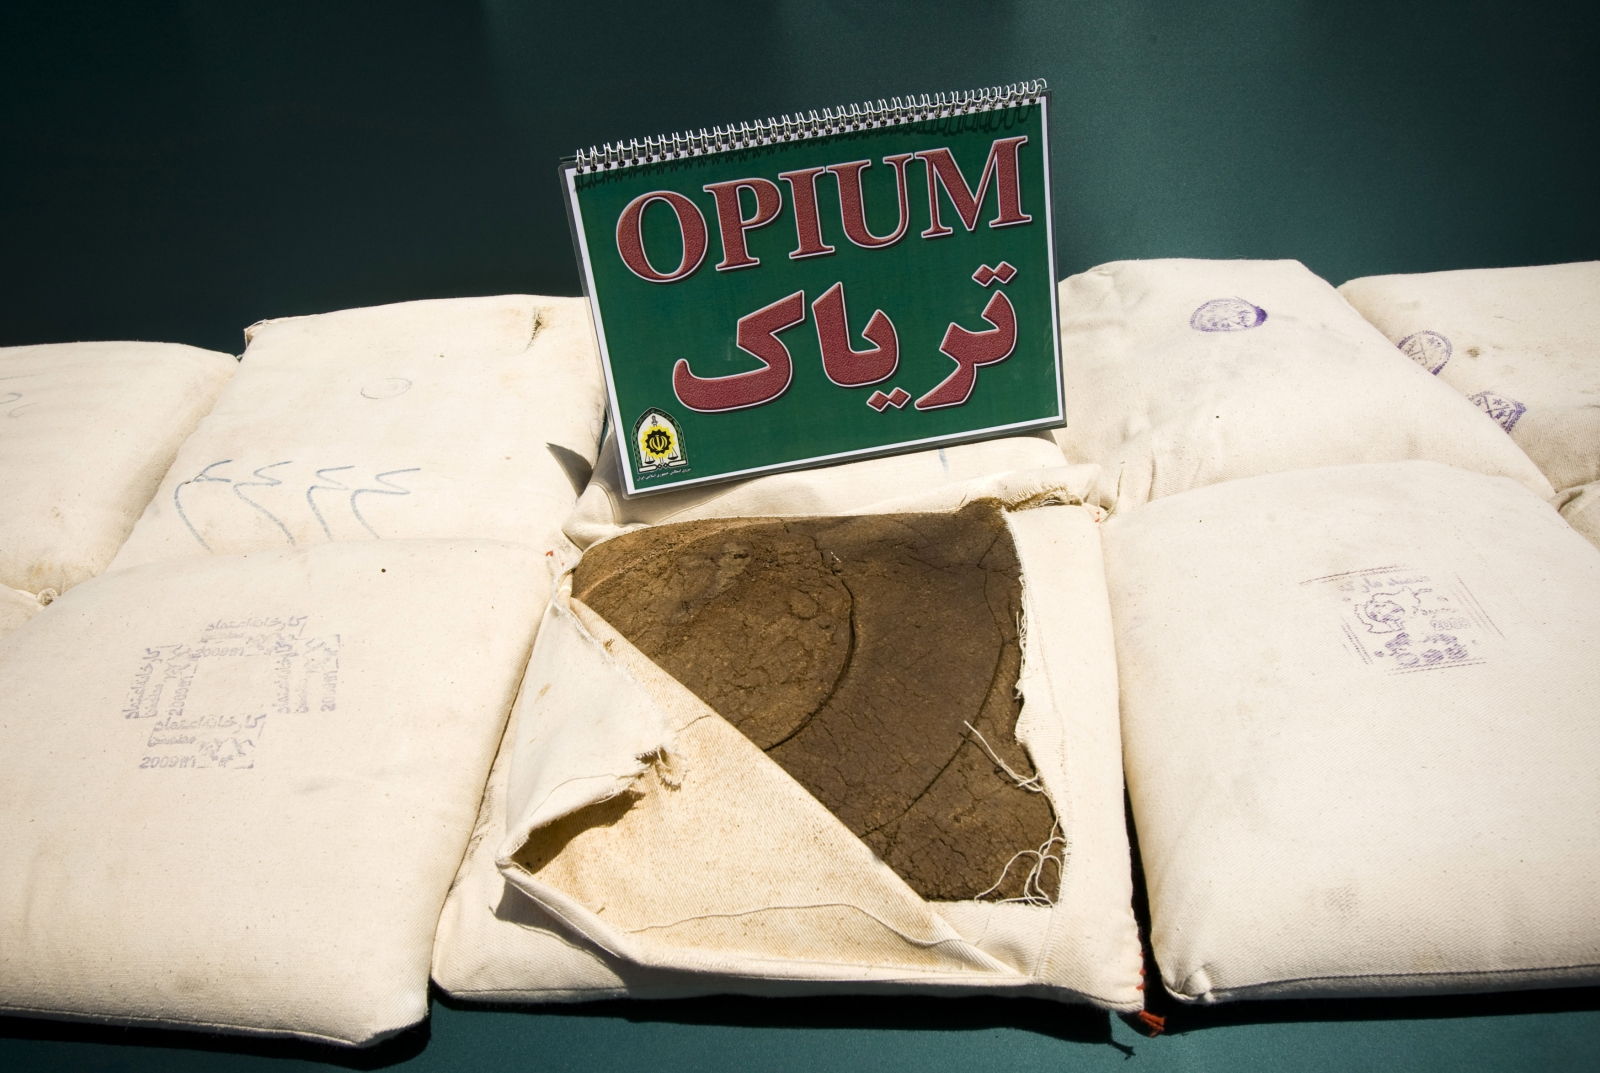 Opium seized on the Iranian border. (Reuters)